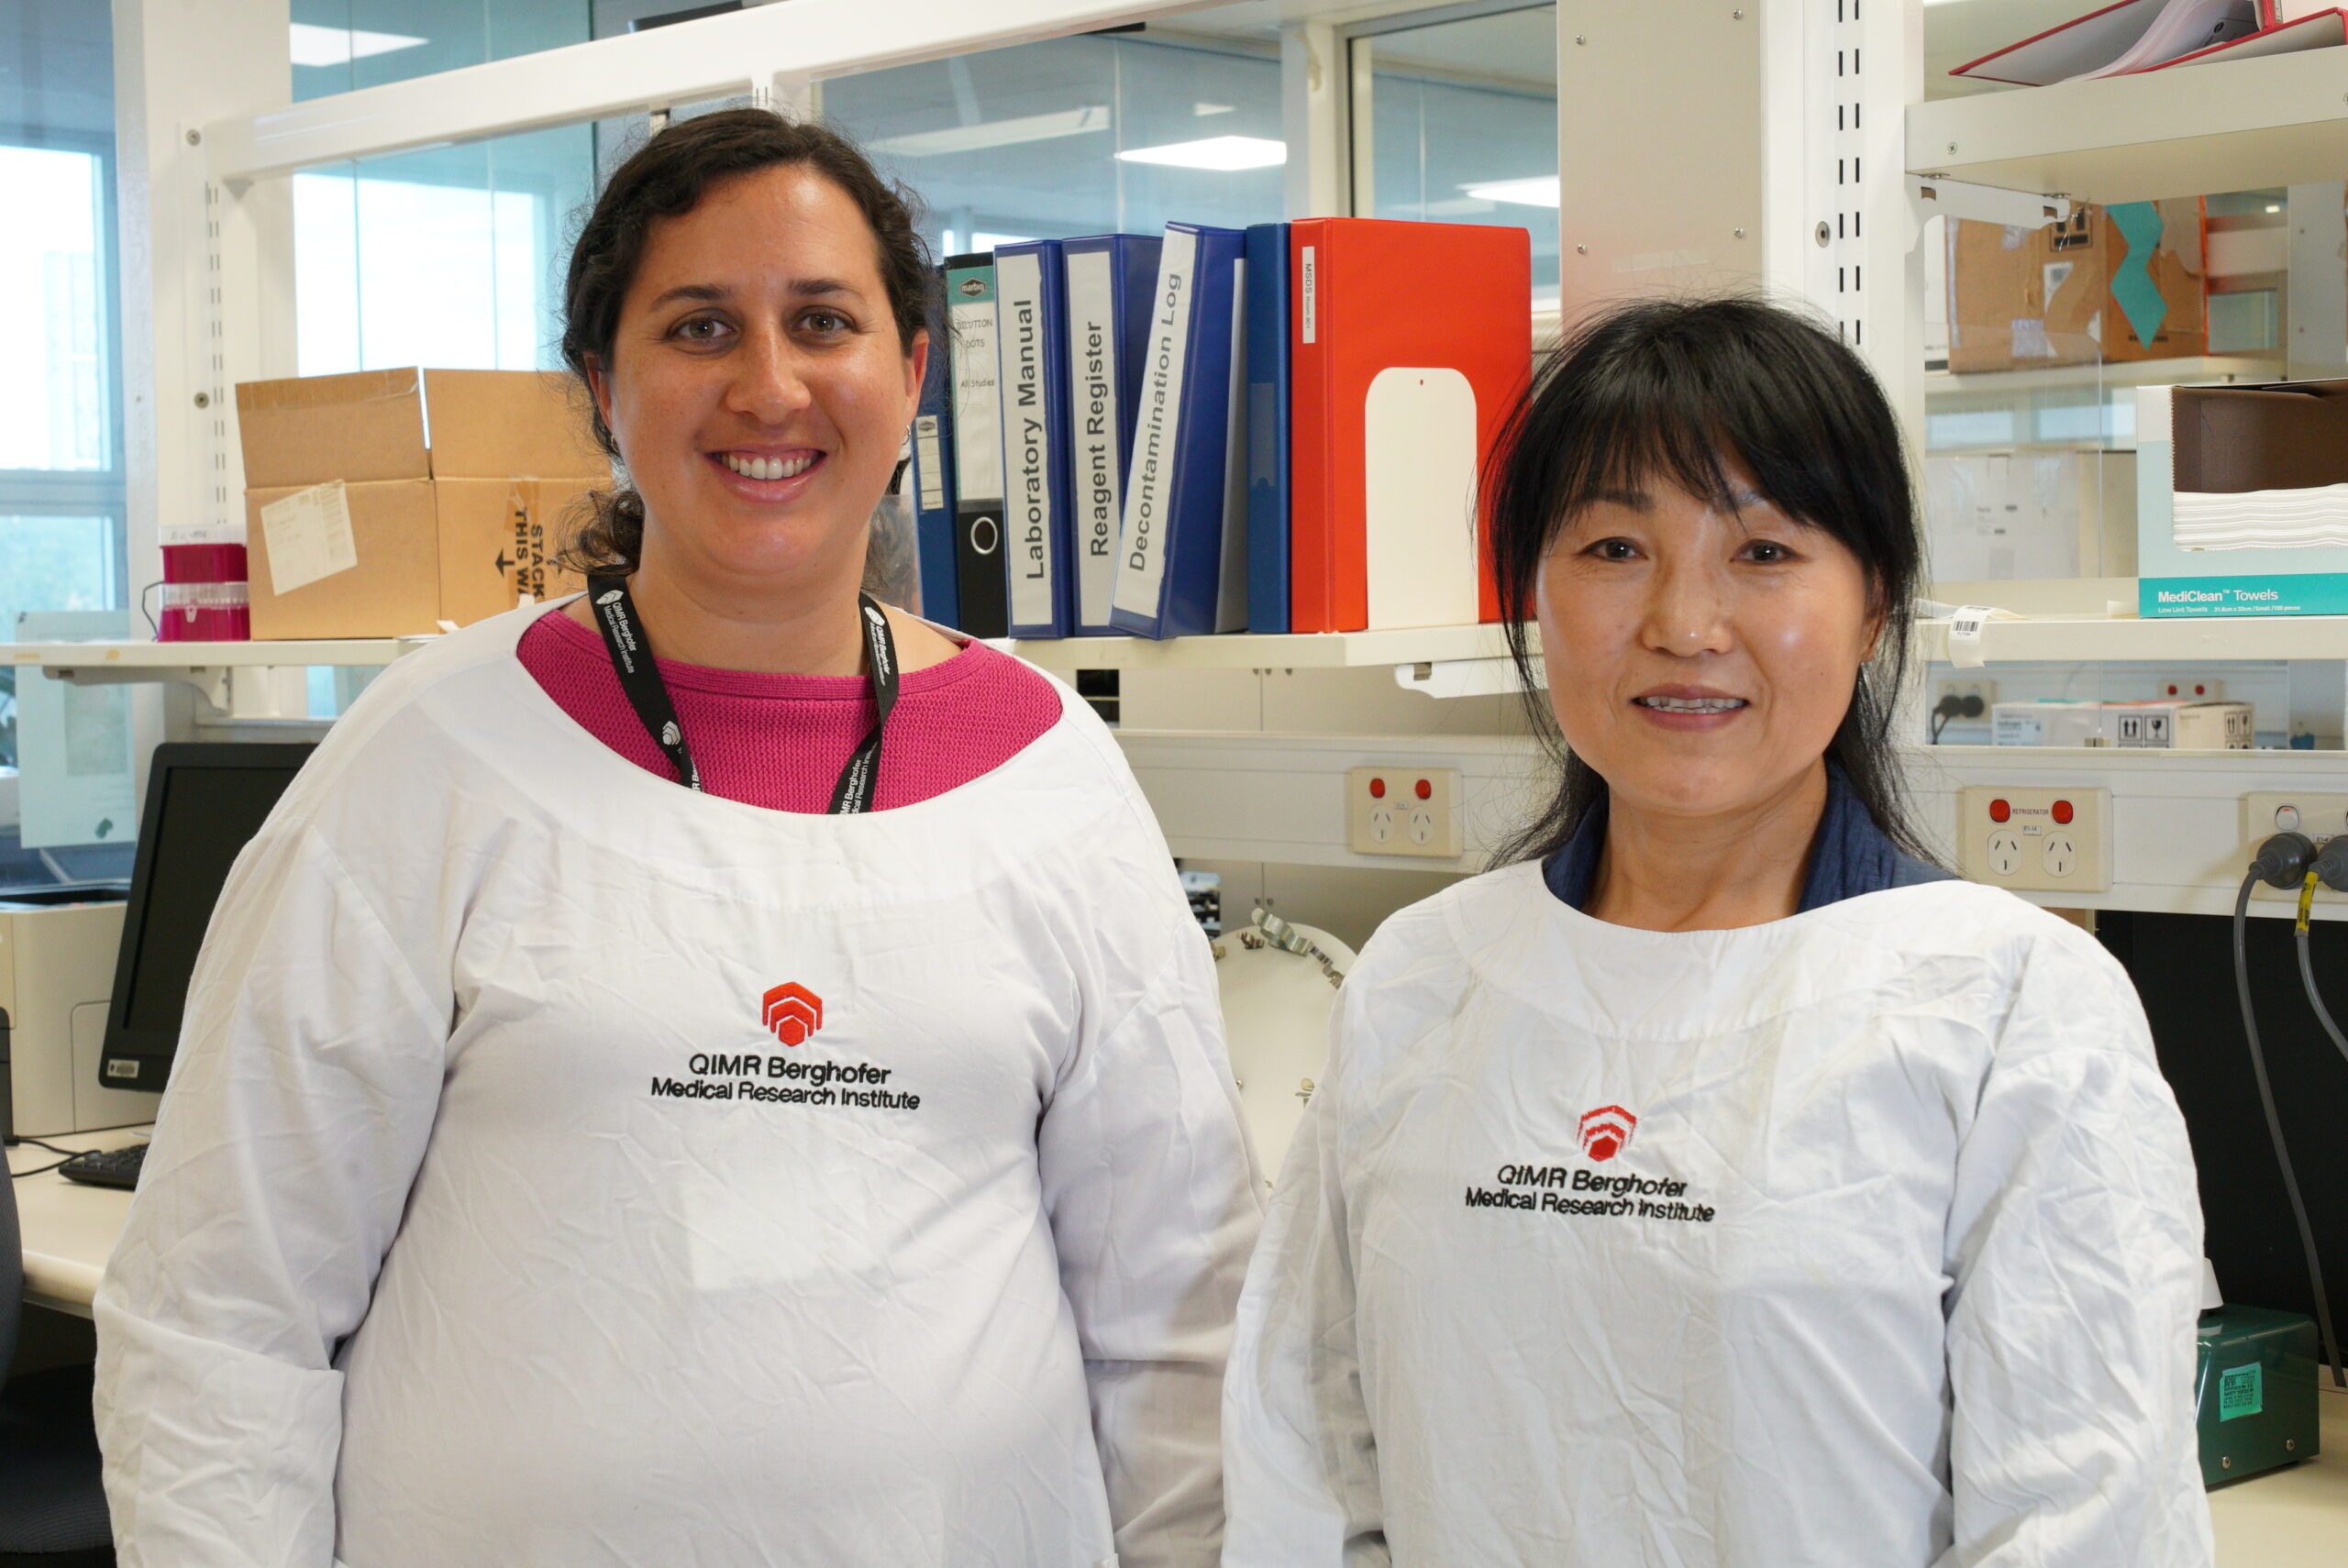 Lab assistants - Tabatha and Ching